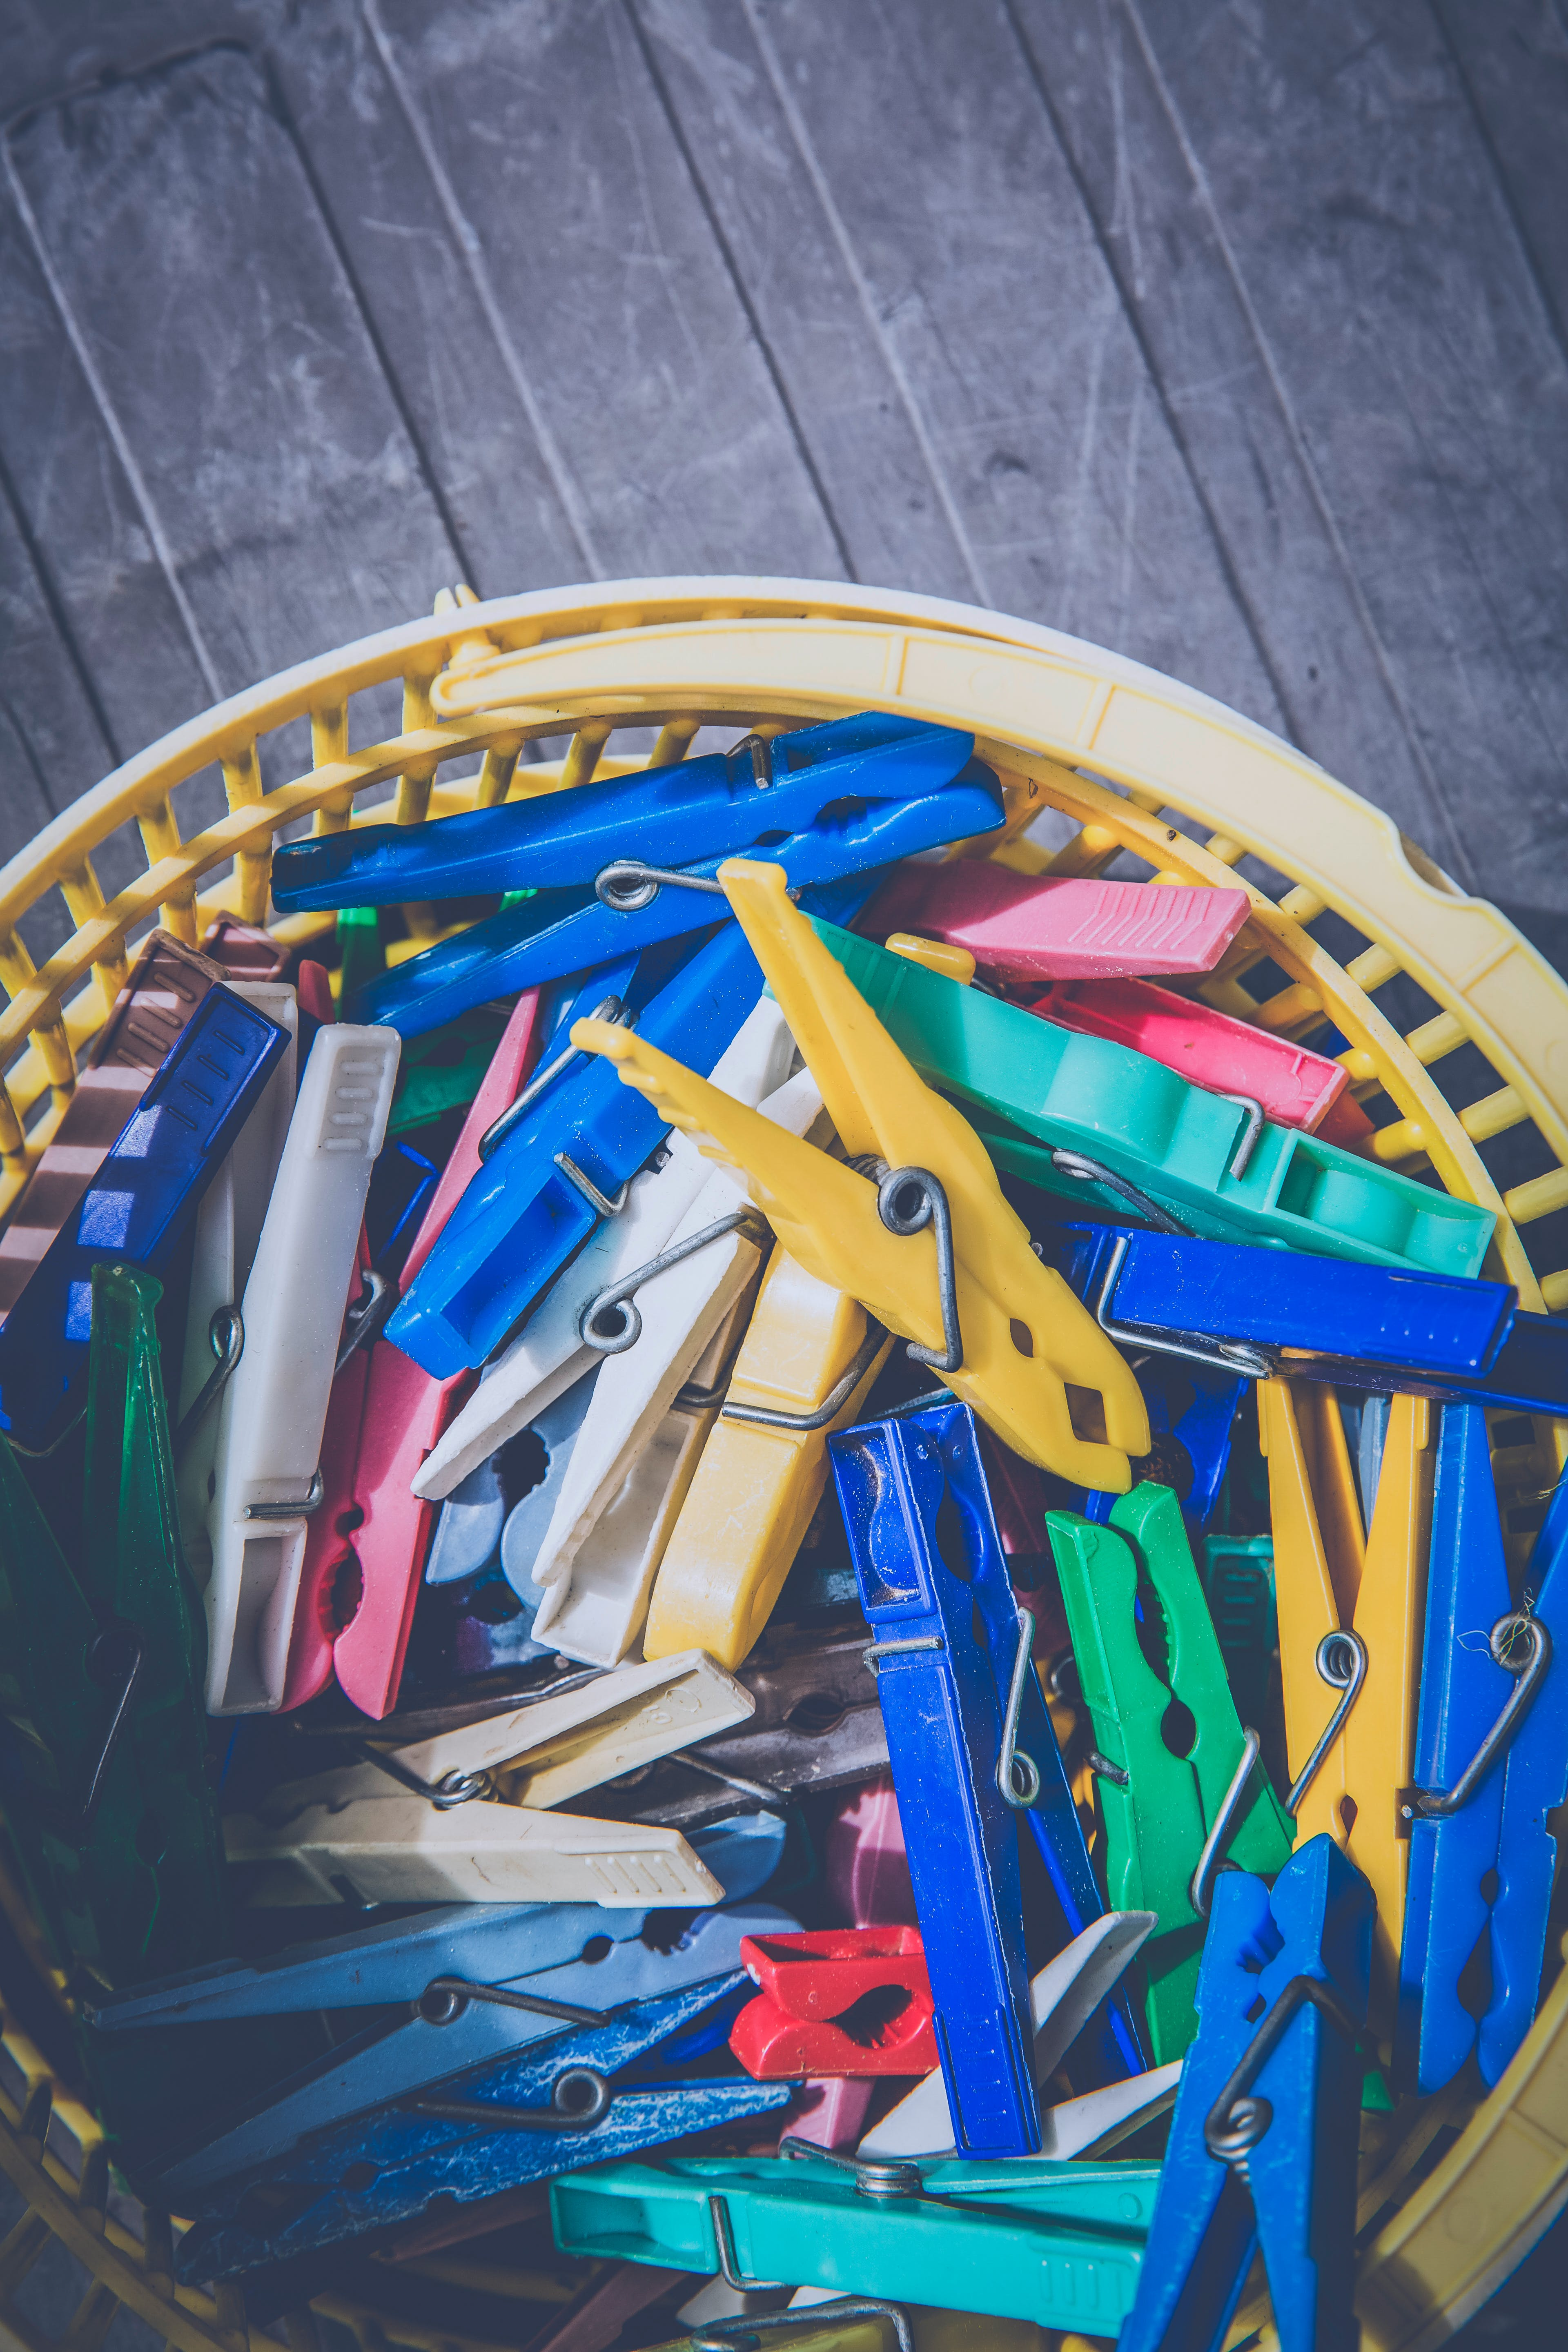 Red Blue Teal Green and Yellow Clothes Pin in Yellow Plastic Bucket